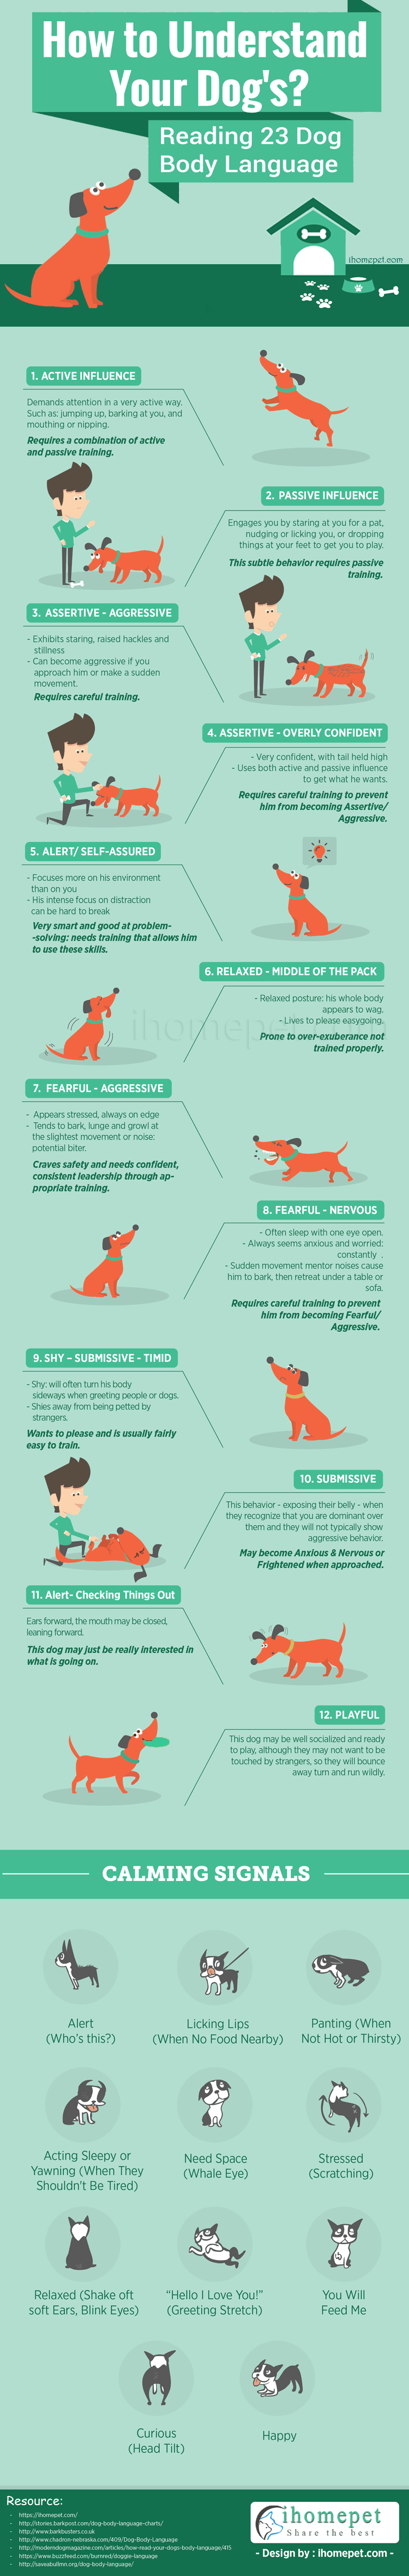 Understand 23 Dog Body Language